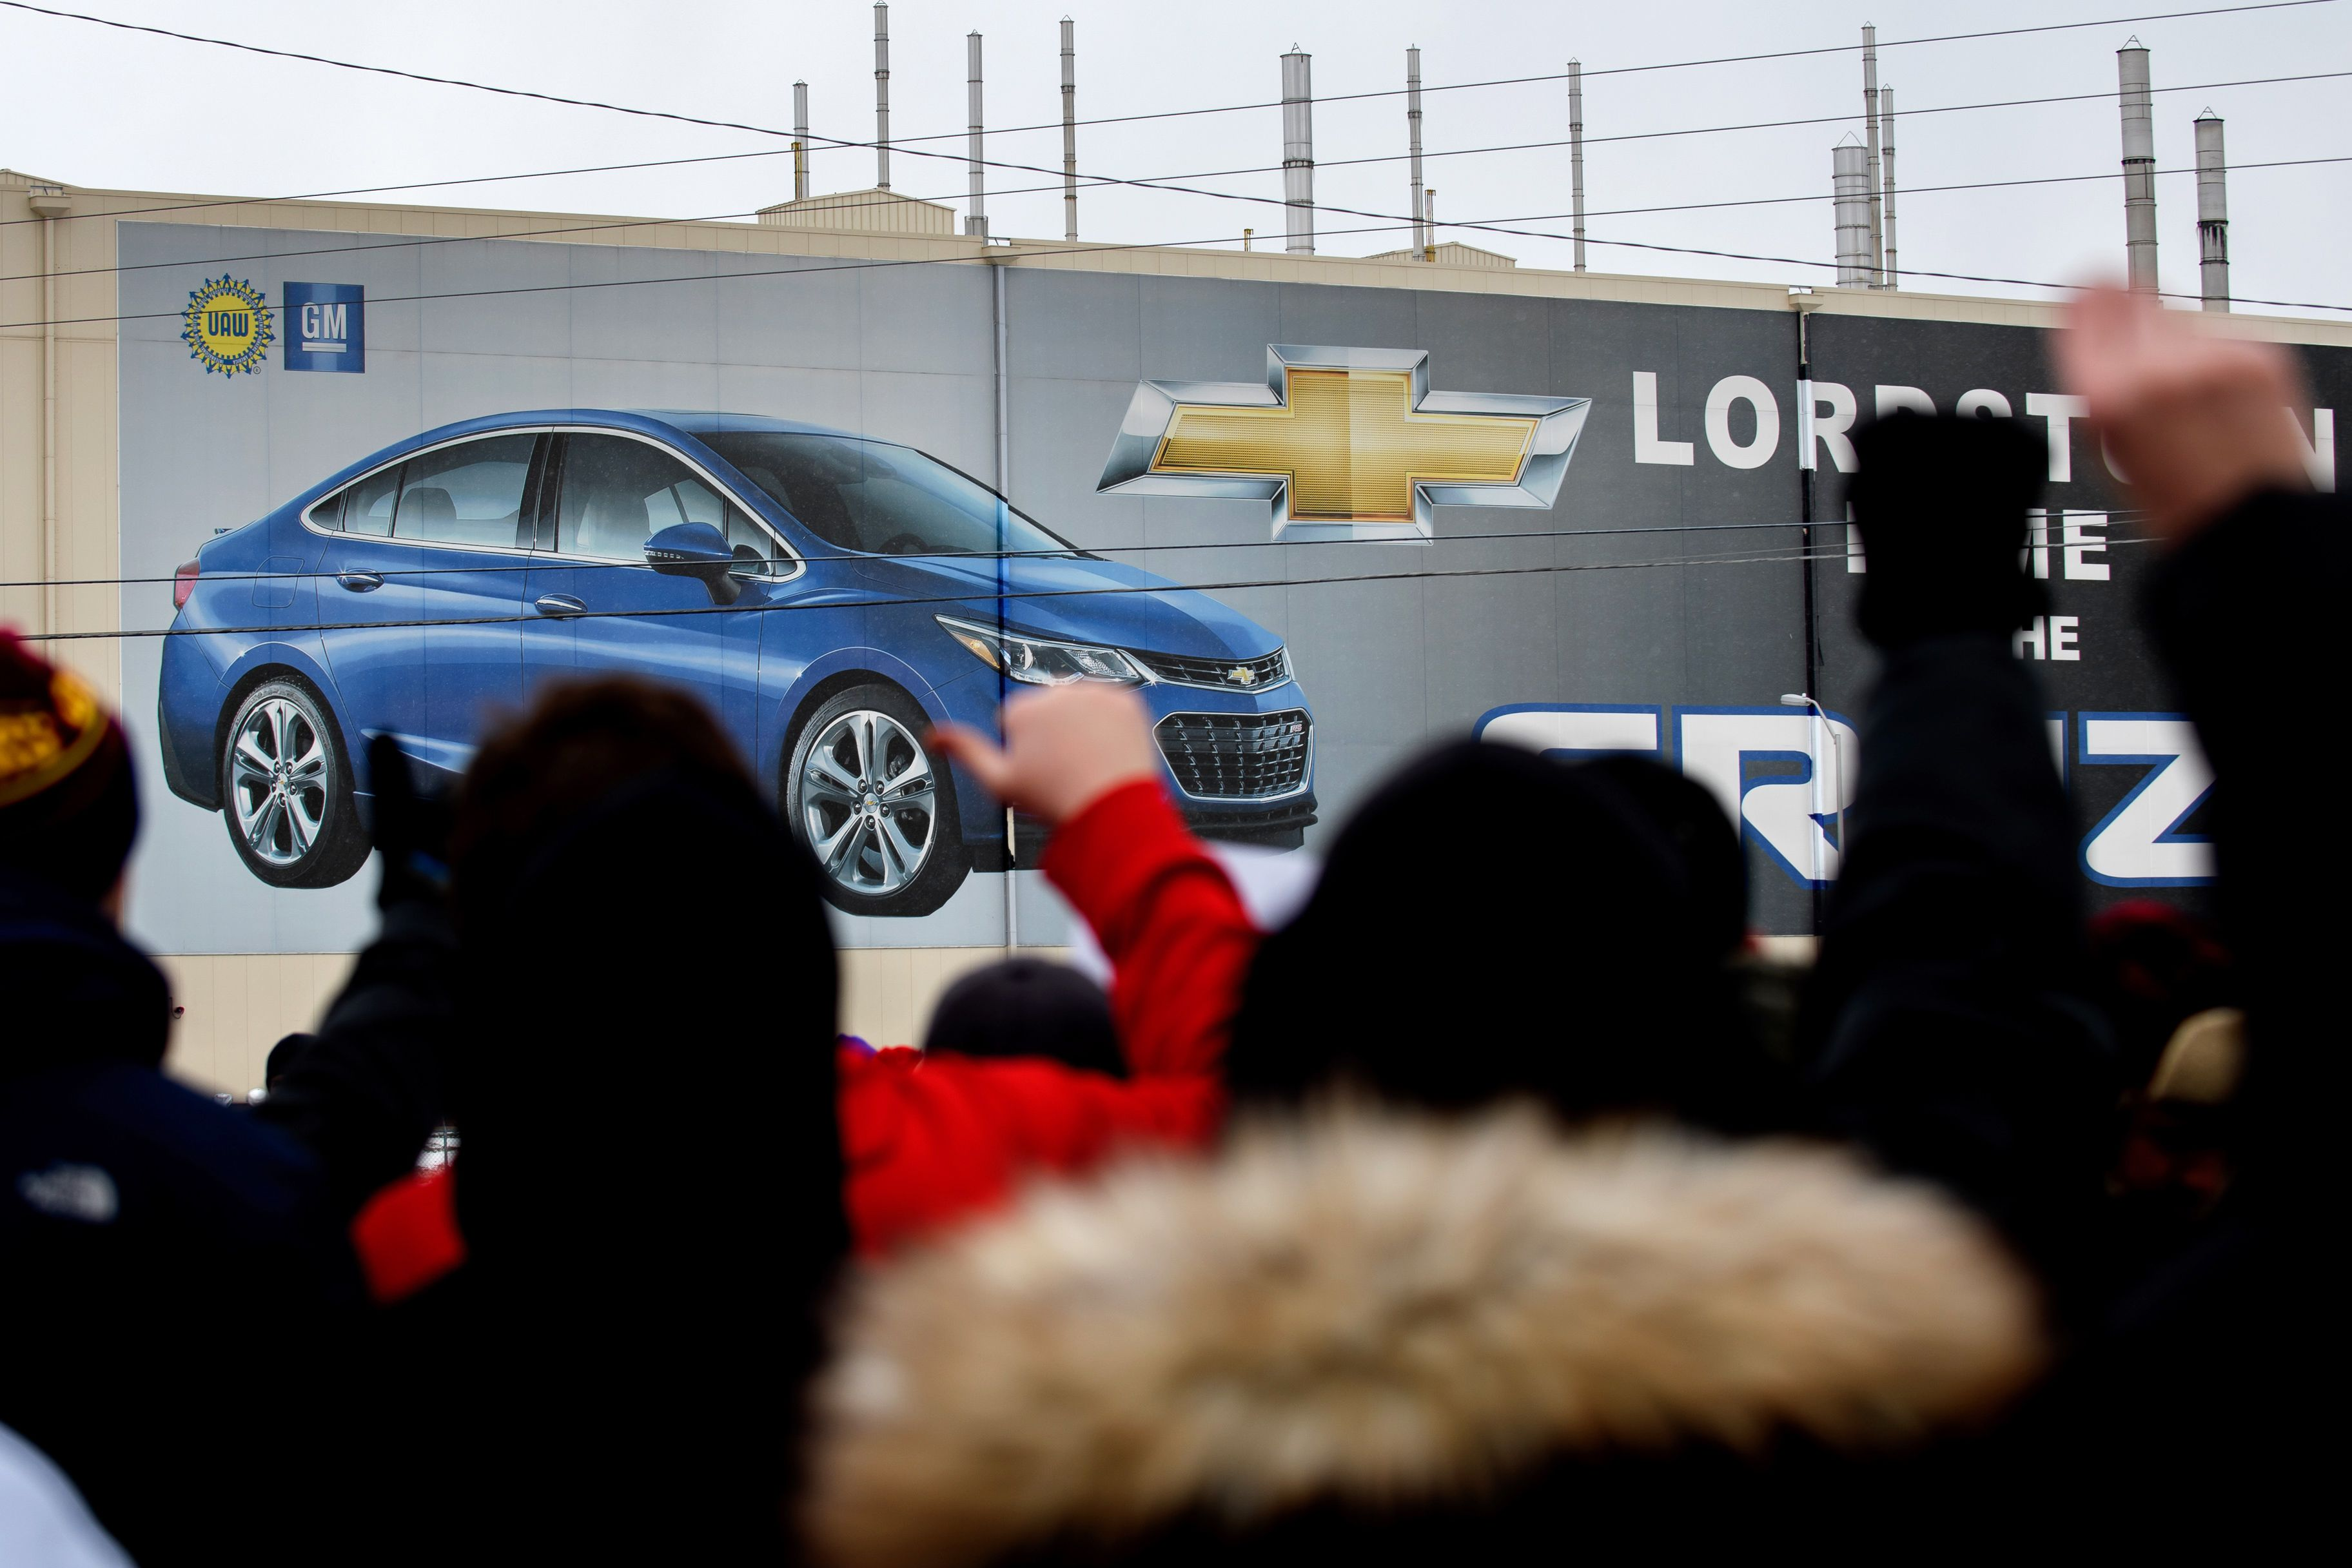 GM says it will invest $700 million to create 450 jobs in three Ohio cities